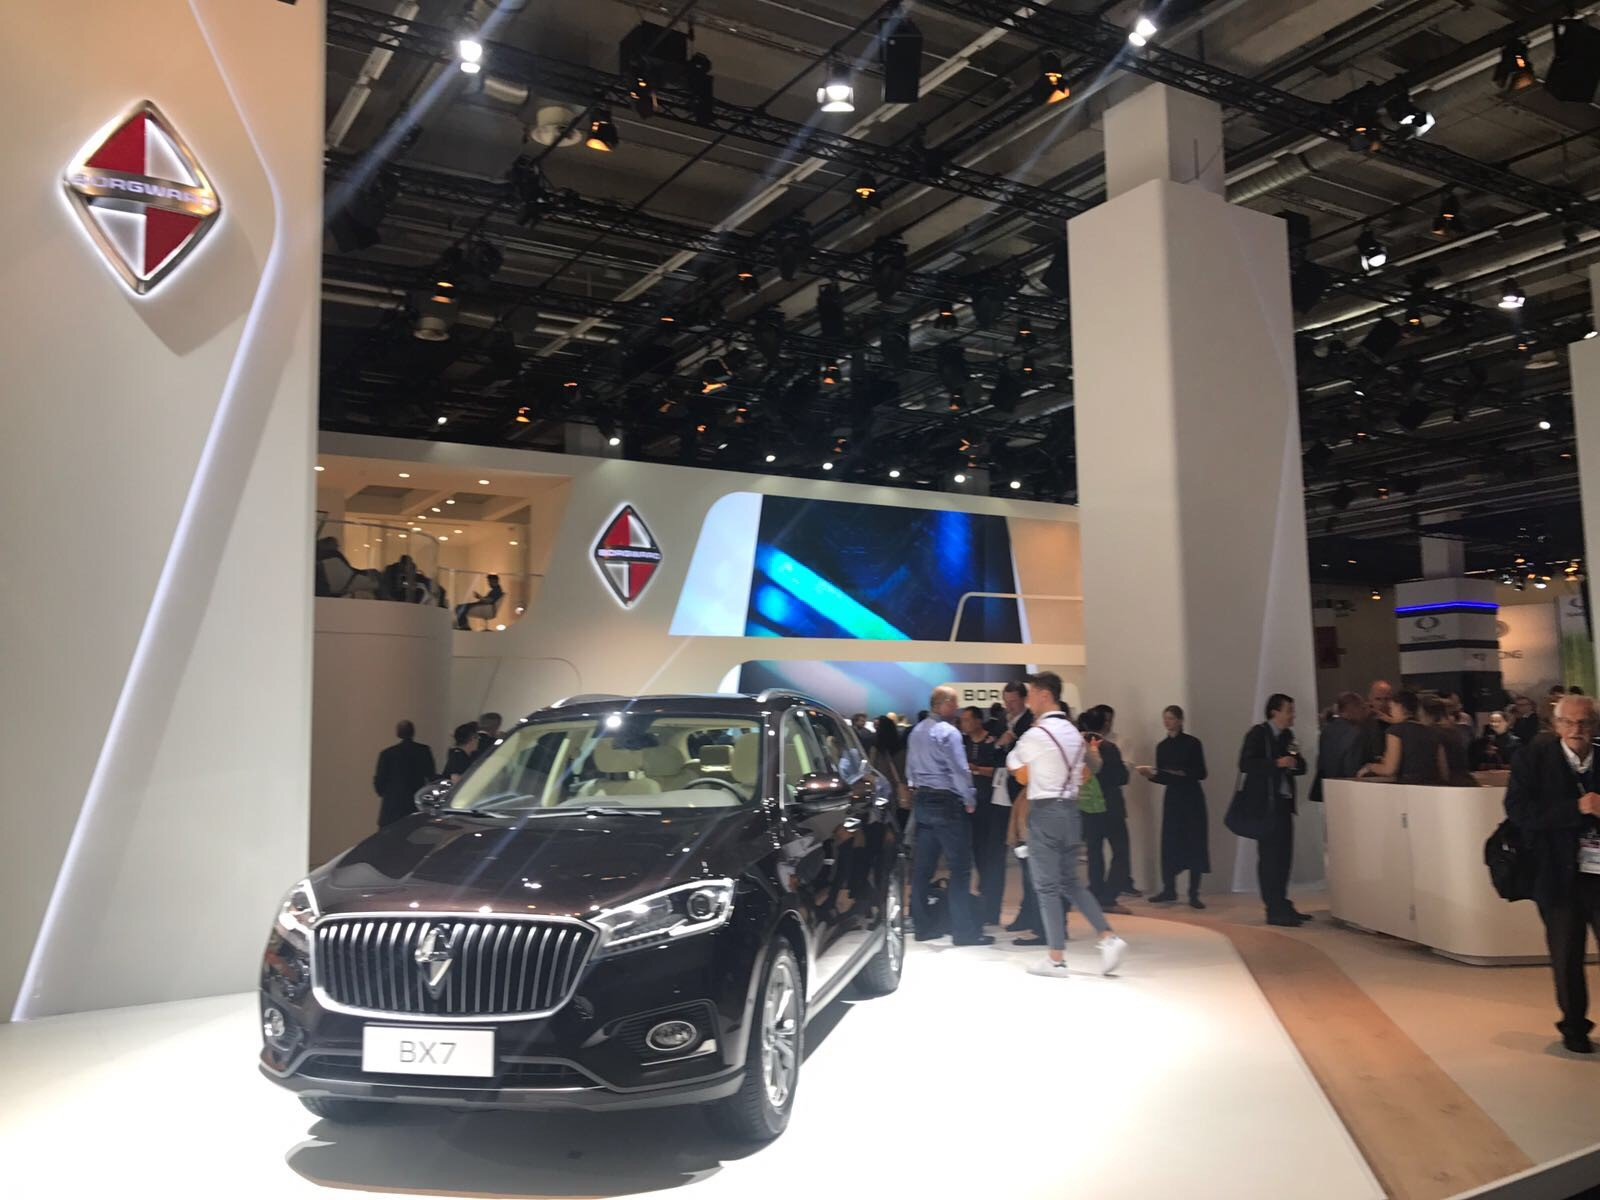 Borgward showed off the limited-edition BX7 SUV. The new luxury SUV will go on sale in Germany first before other models are launched across the continent.